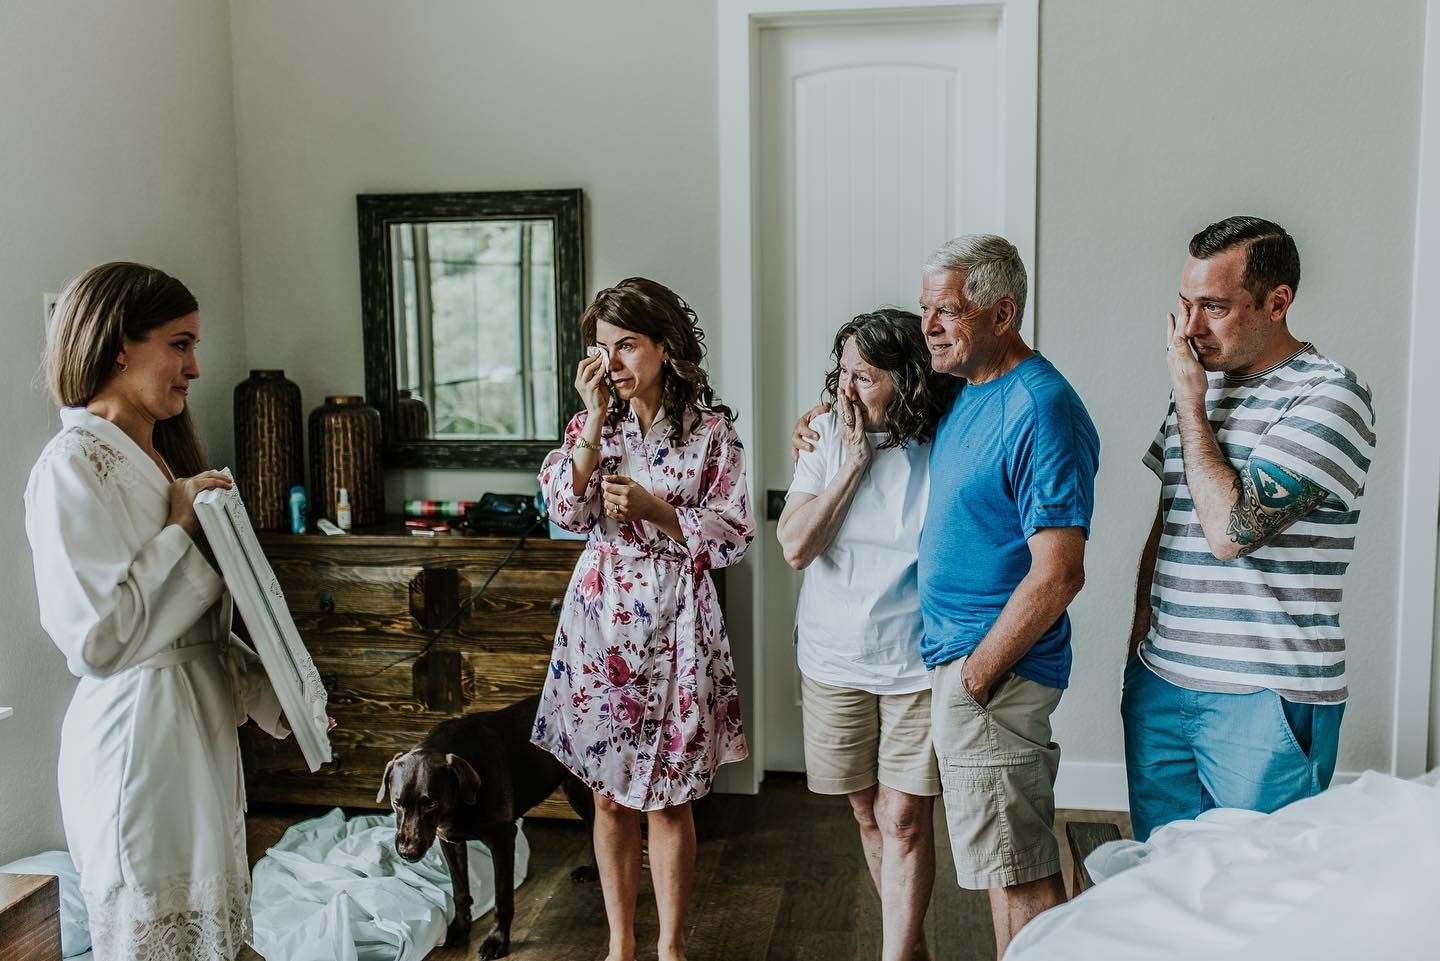 A Texas bride surprised her family on June 1 with a picture of her wearing her wedding dress and late her grandmother. (Misty McLendon Photography)